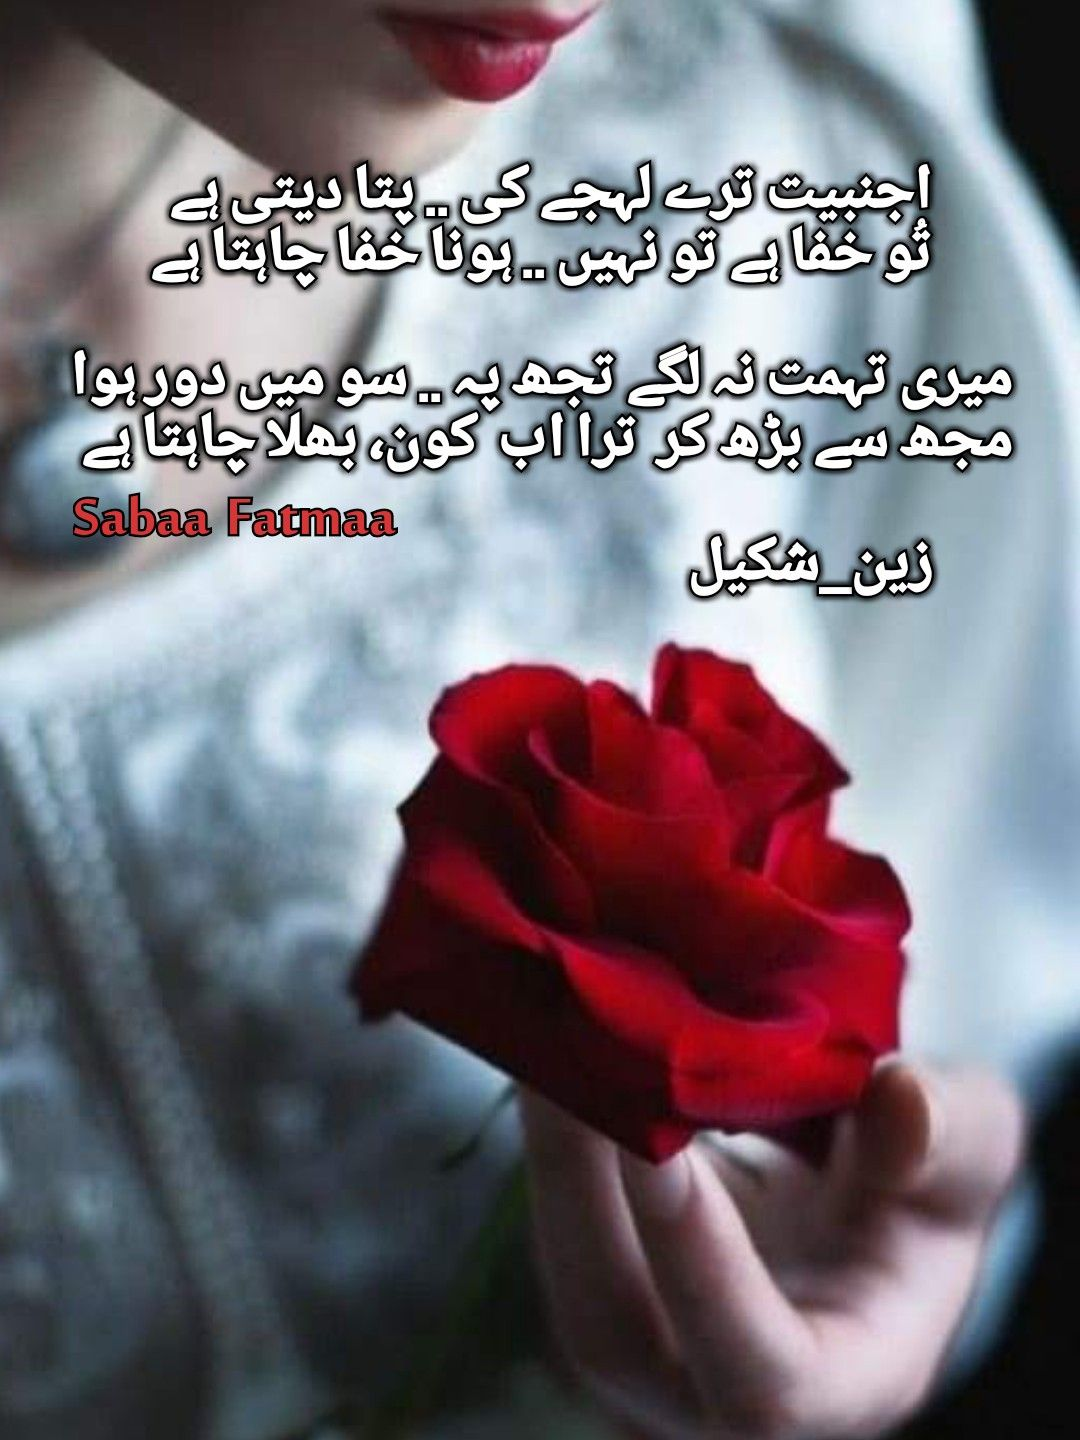 Pin by Sabaa Fatmaa on محبت فاتحِ عالم Poetry quotes